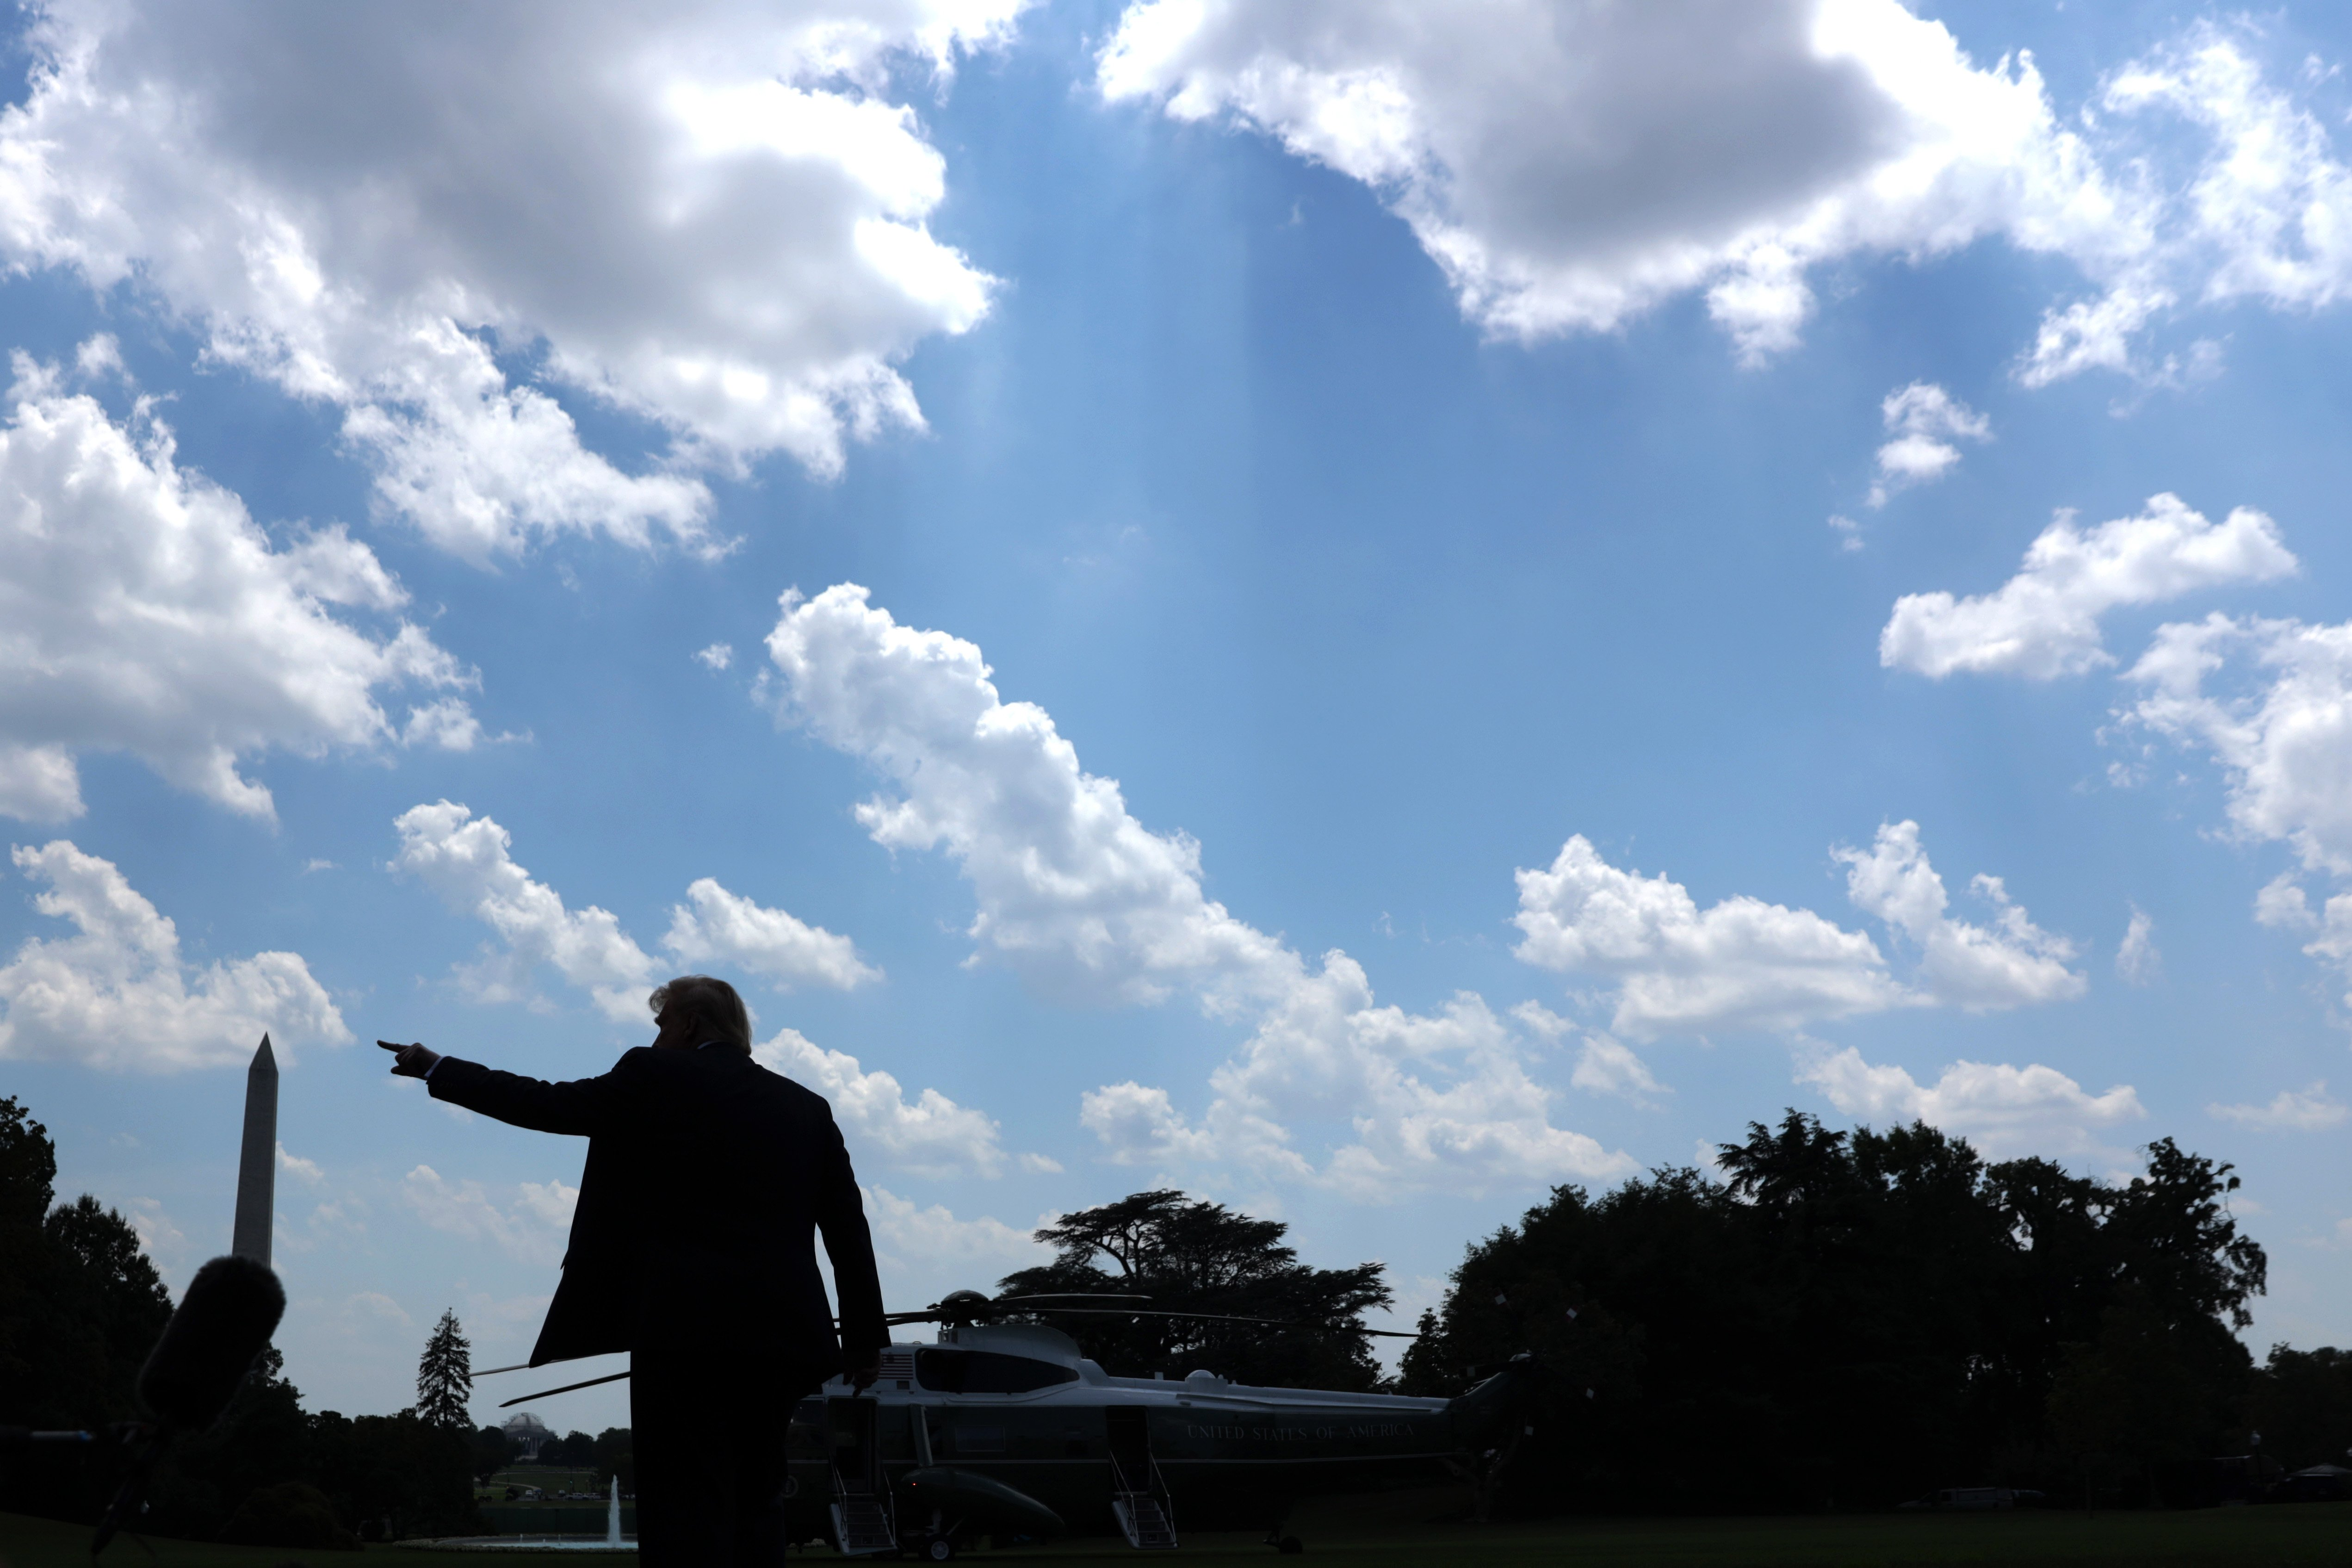 "WASHINGTON, DC - JULY 27: U.S. President Donald Trump gestures prior to his departure from the White House July 27, 2020 in Washington, DC. President Trump is scheduled to visit the FUJIFILM Diosynth Biotechnologies' Innovation Center in Morrisville, North Carolina, a facility that supports manufacturing of ""key components of the COVID-19 vaccine candidate"" developed by Novavax. (Photo by Alex Wong/Getty Images)"